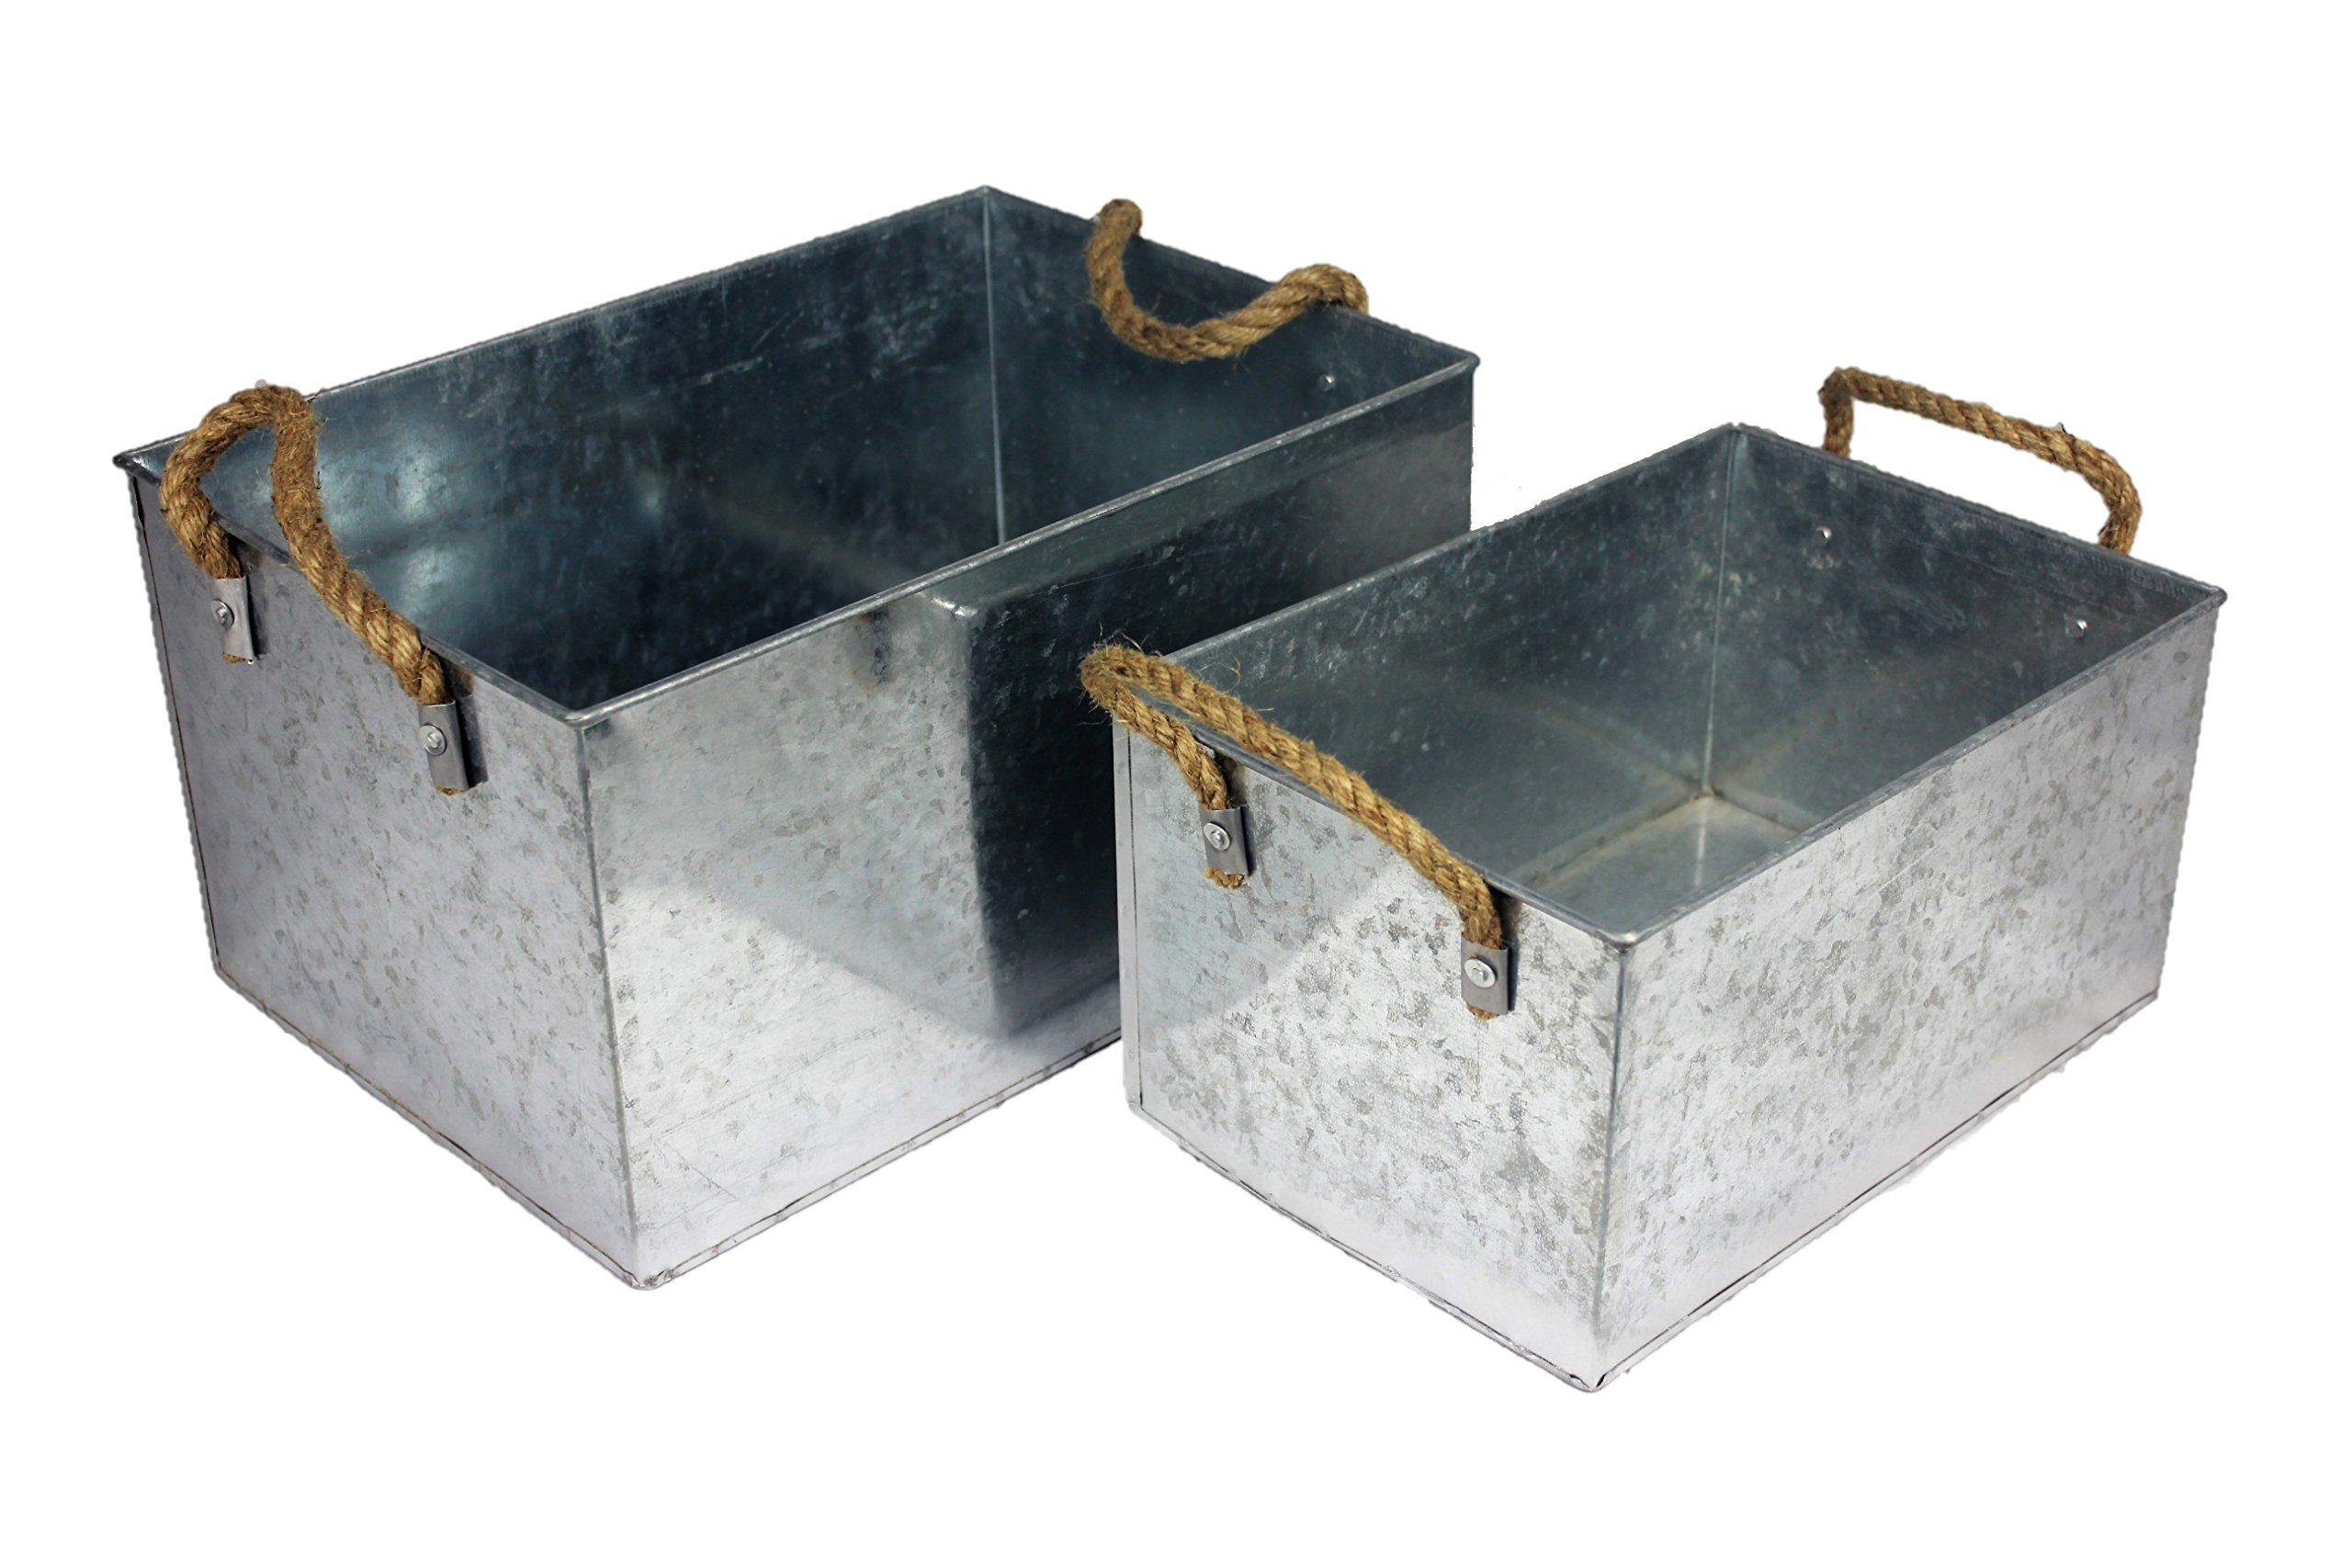 BW Decor Spotted Galvanized Metal Storage Bin Basket With Rope Handle Country Home Kitchen Deco